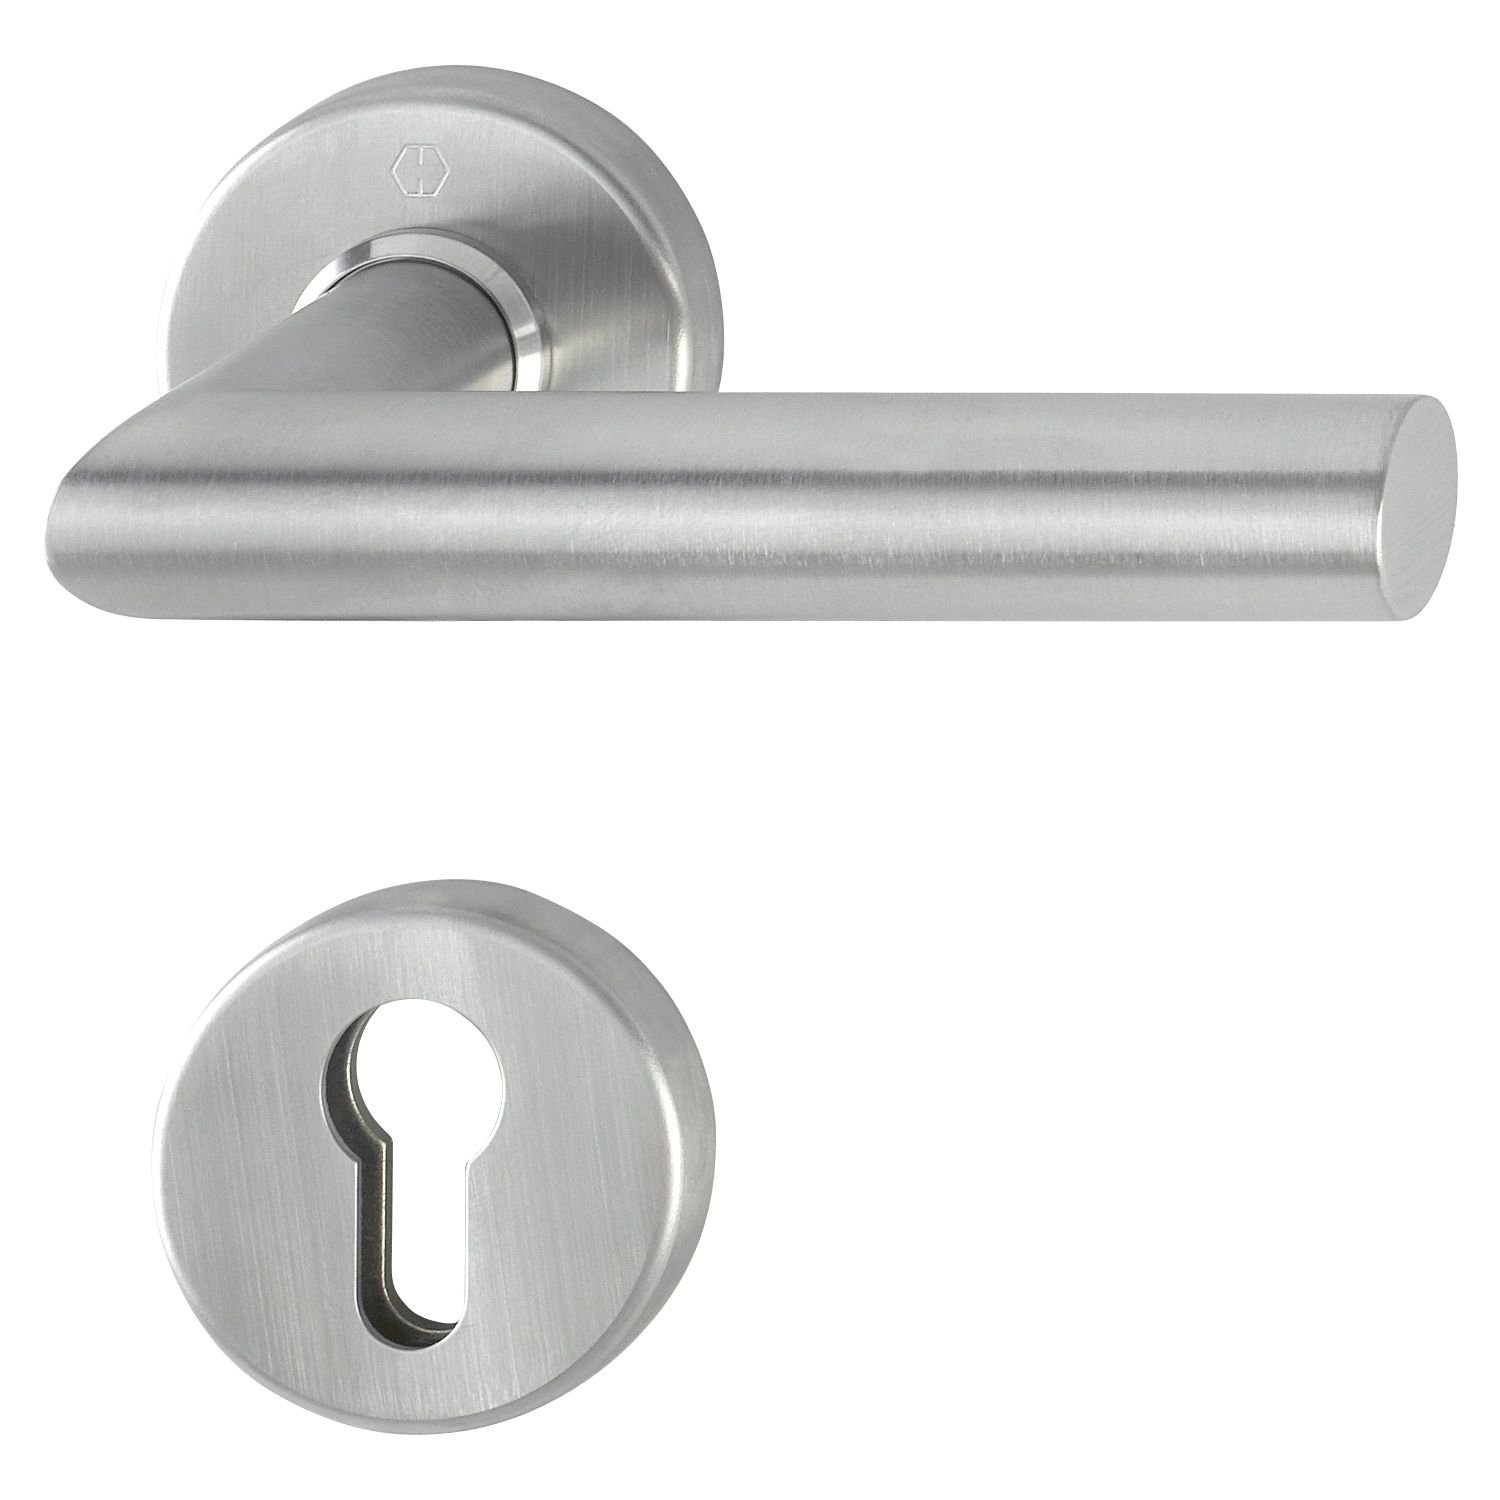 Hoppe 3901891Security Door Handle Half Set Amsterdam Amsterdam, Matt Stainless Steel, Suitable for Key Button Long Plate Door Thickness 8mm 67to 72mm, Square Pin, Rundrosette PZ